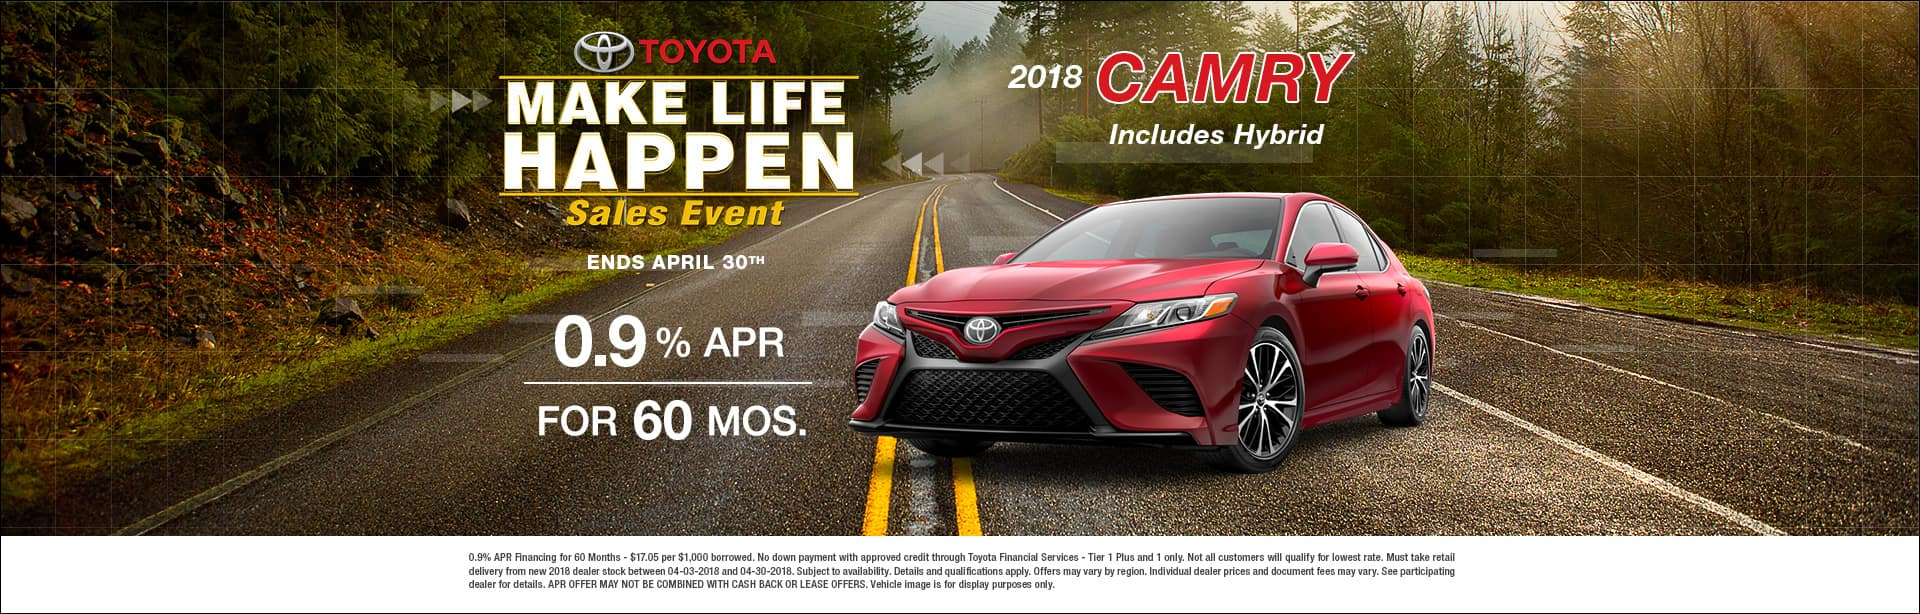 Camry Special APR Offer Cain Toyota North Canton Ohio